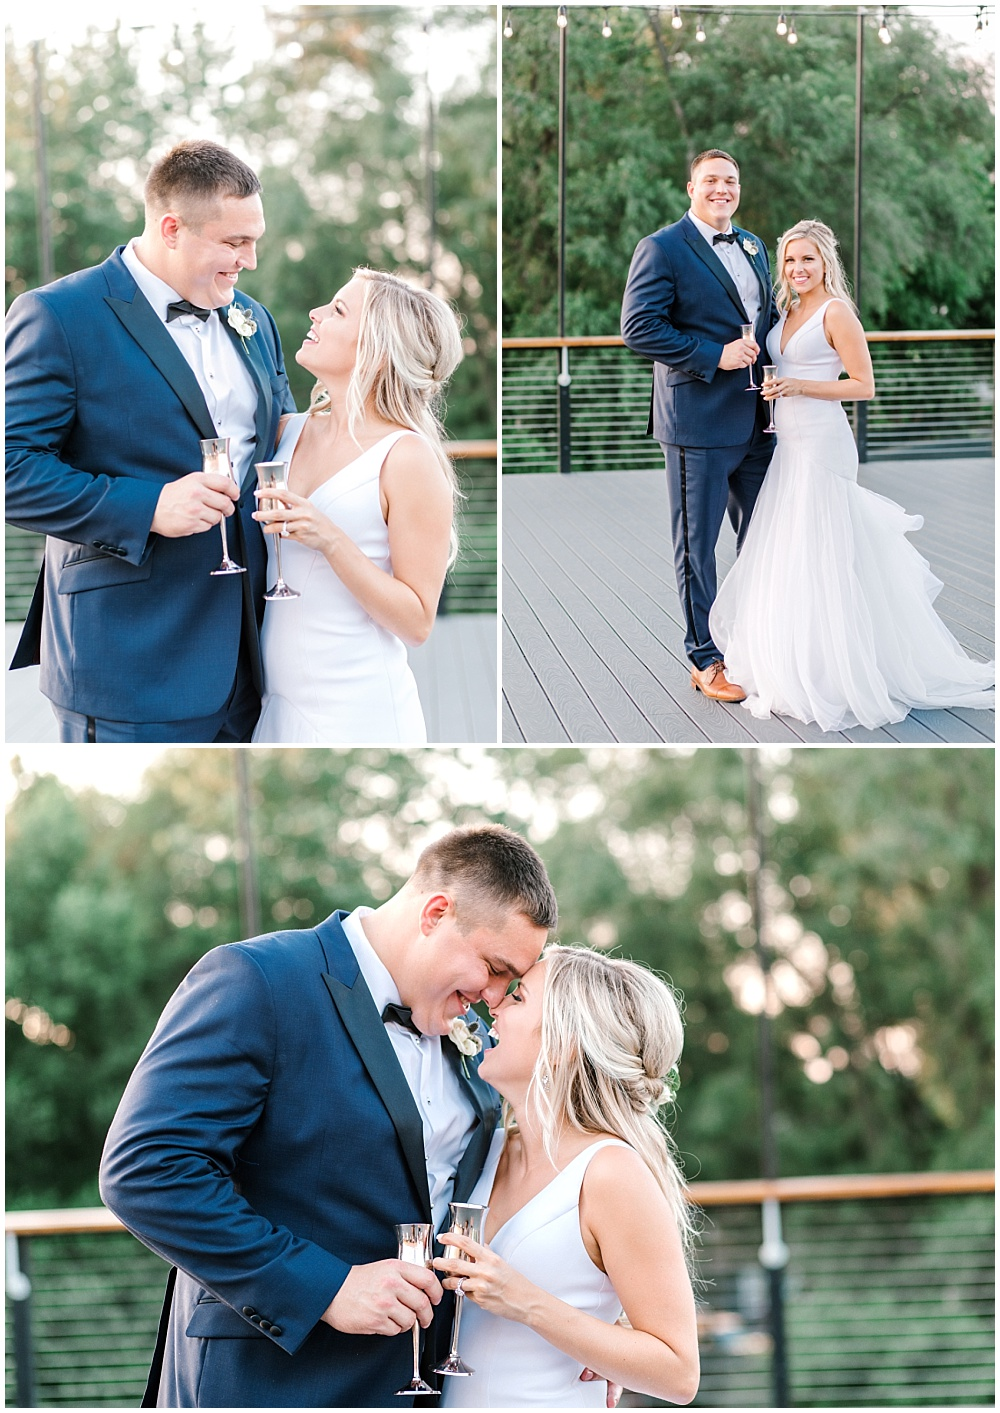 Bride and groom sunset portraits | NFL Player Nick Martin's rustic chic summer wedding at the Biltwell Event Center